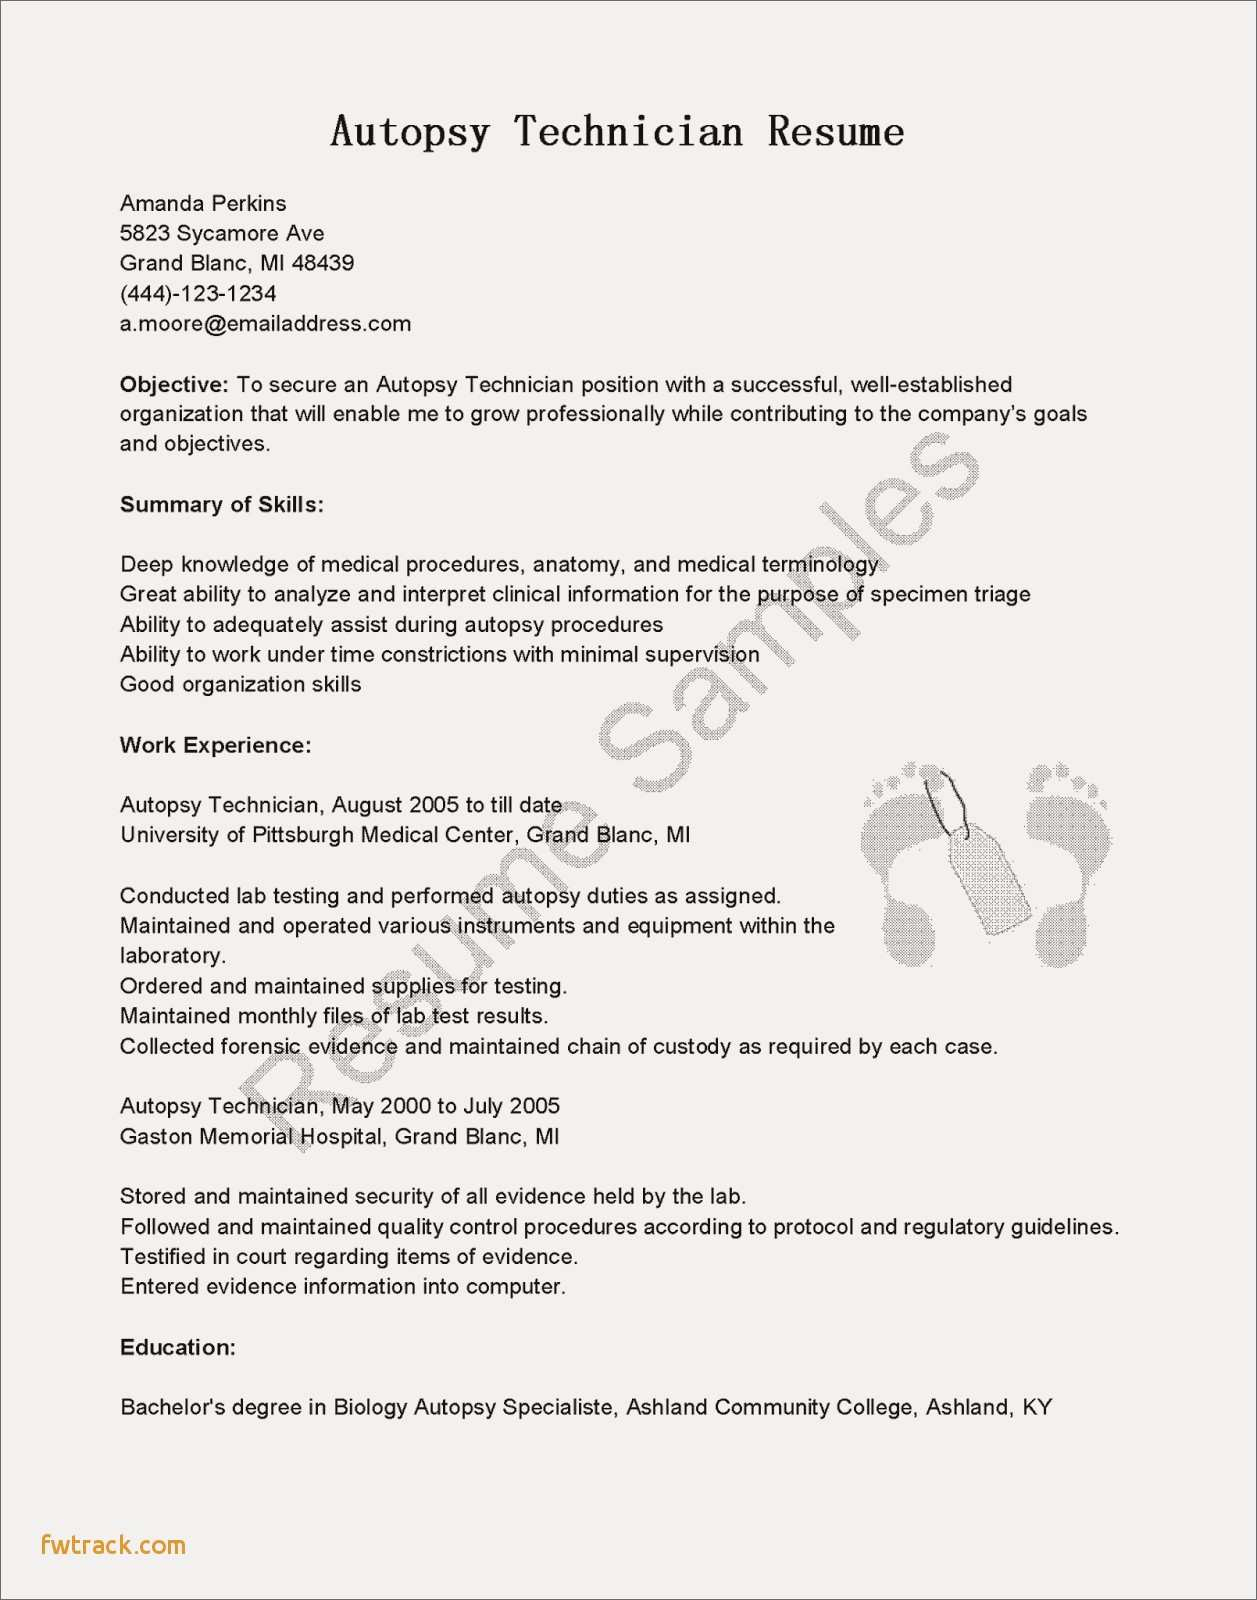 Healthcare Resume Template - Winning Resume Templates Fwtrack Fwtrack